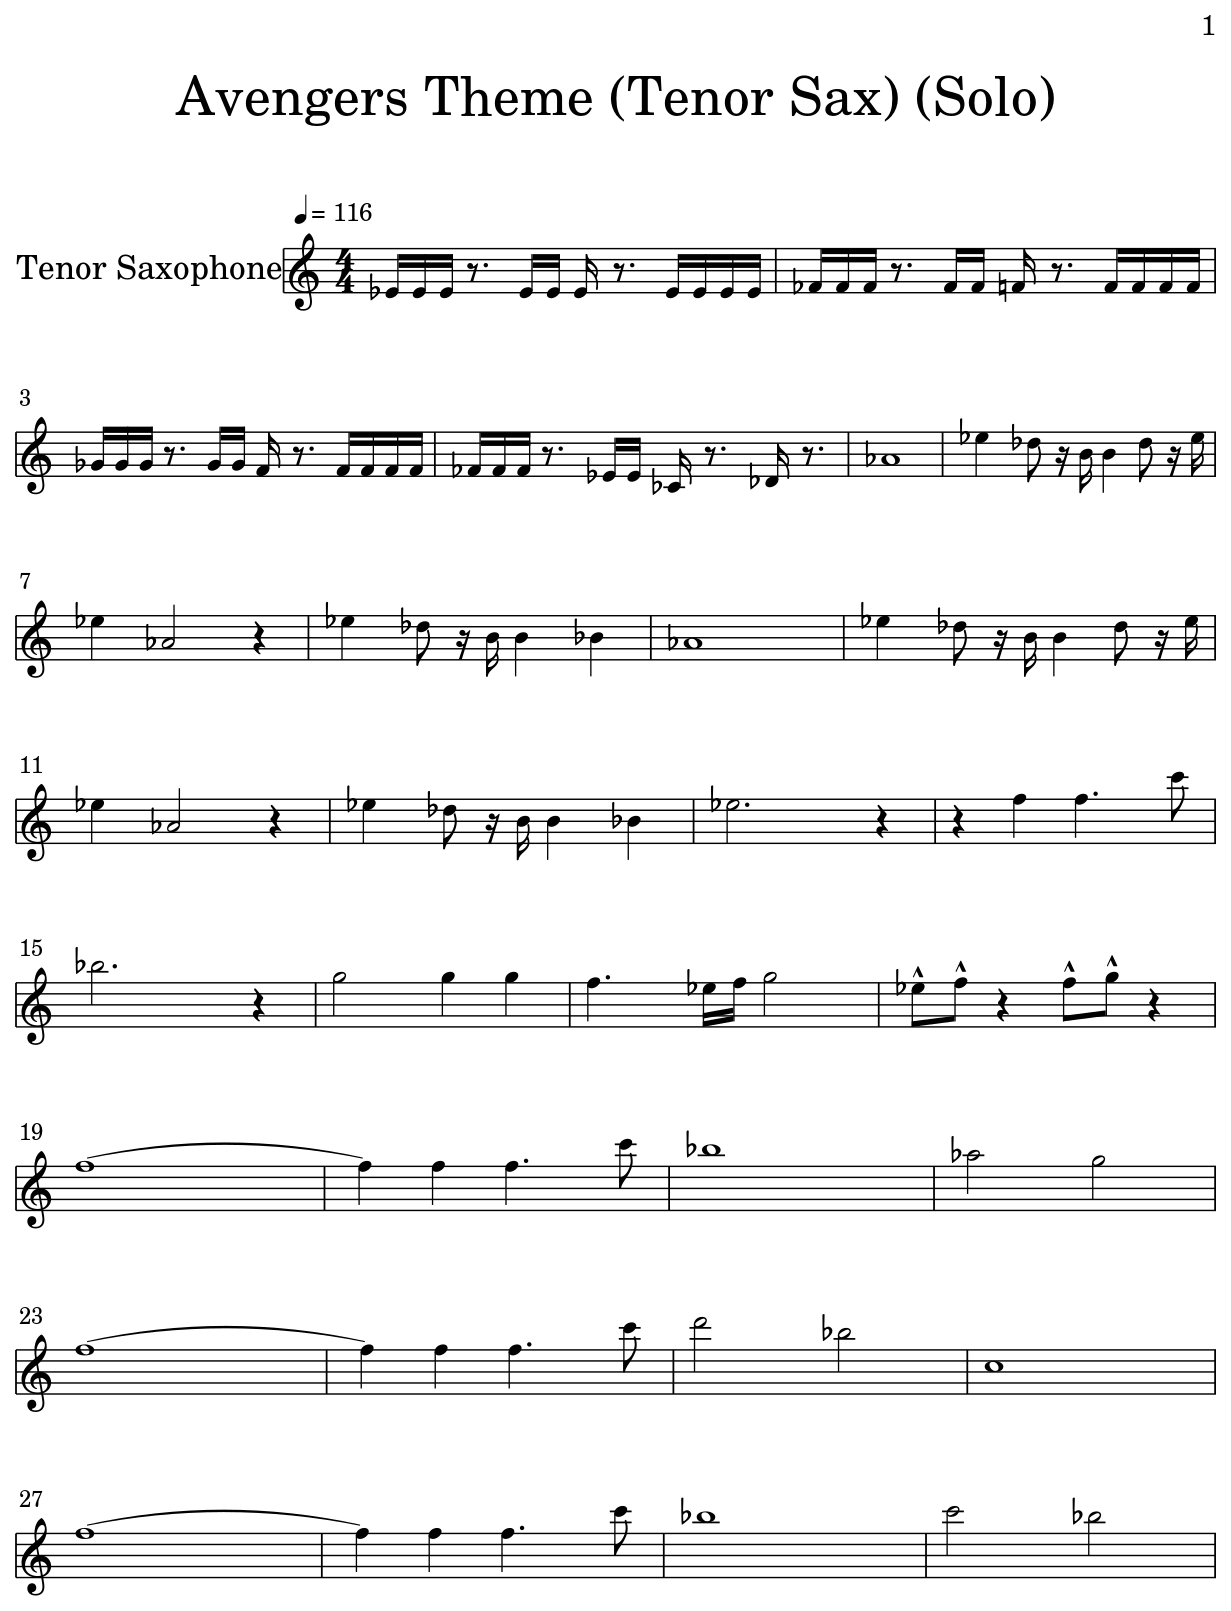 Tenor Sax Solo Sheet Music Free – Grcija